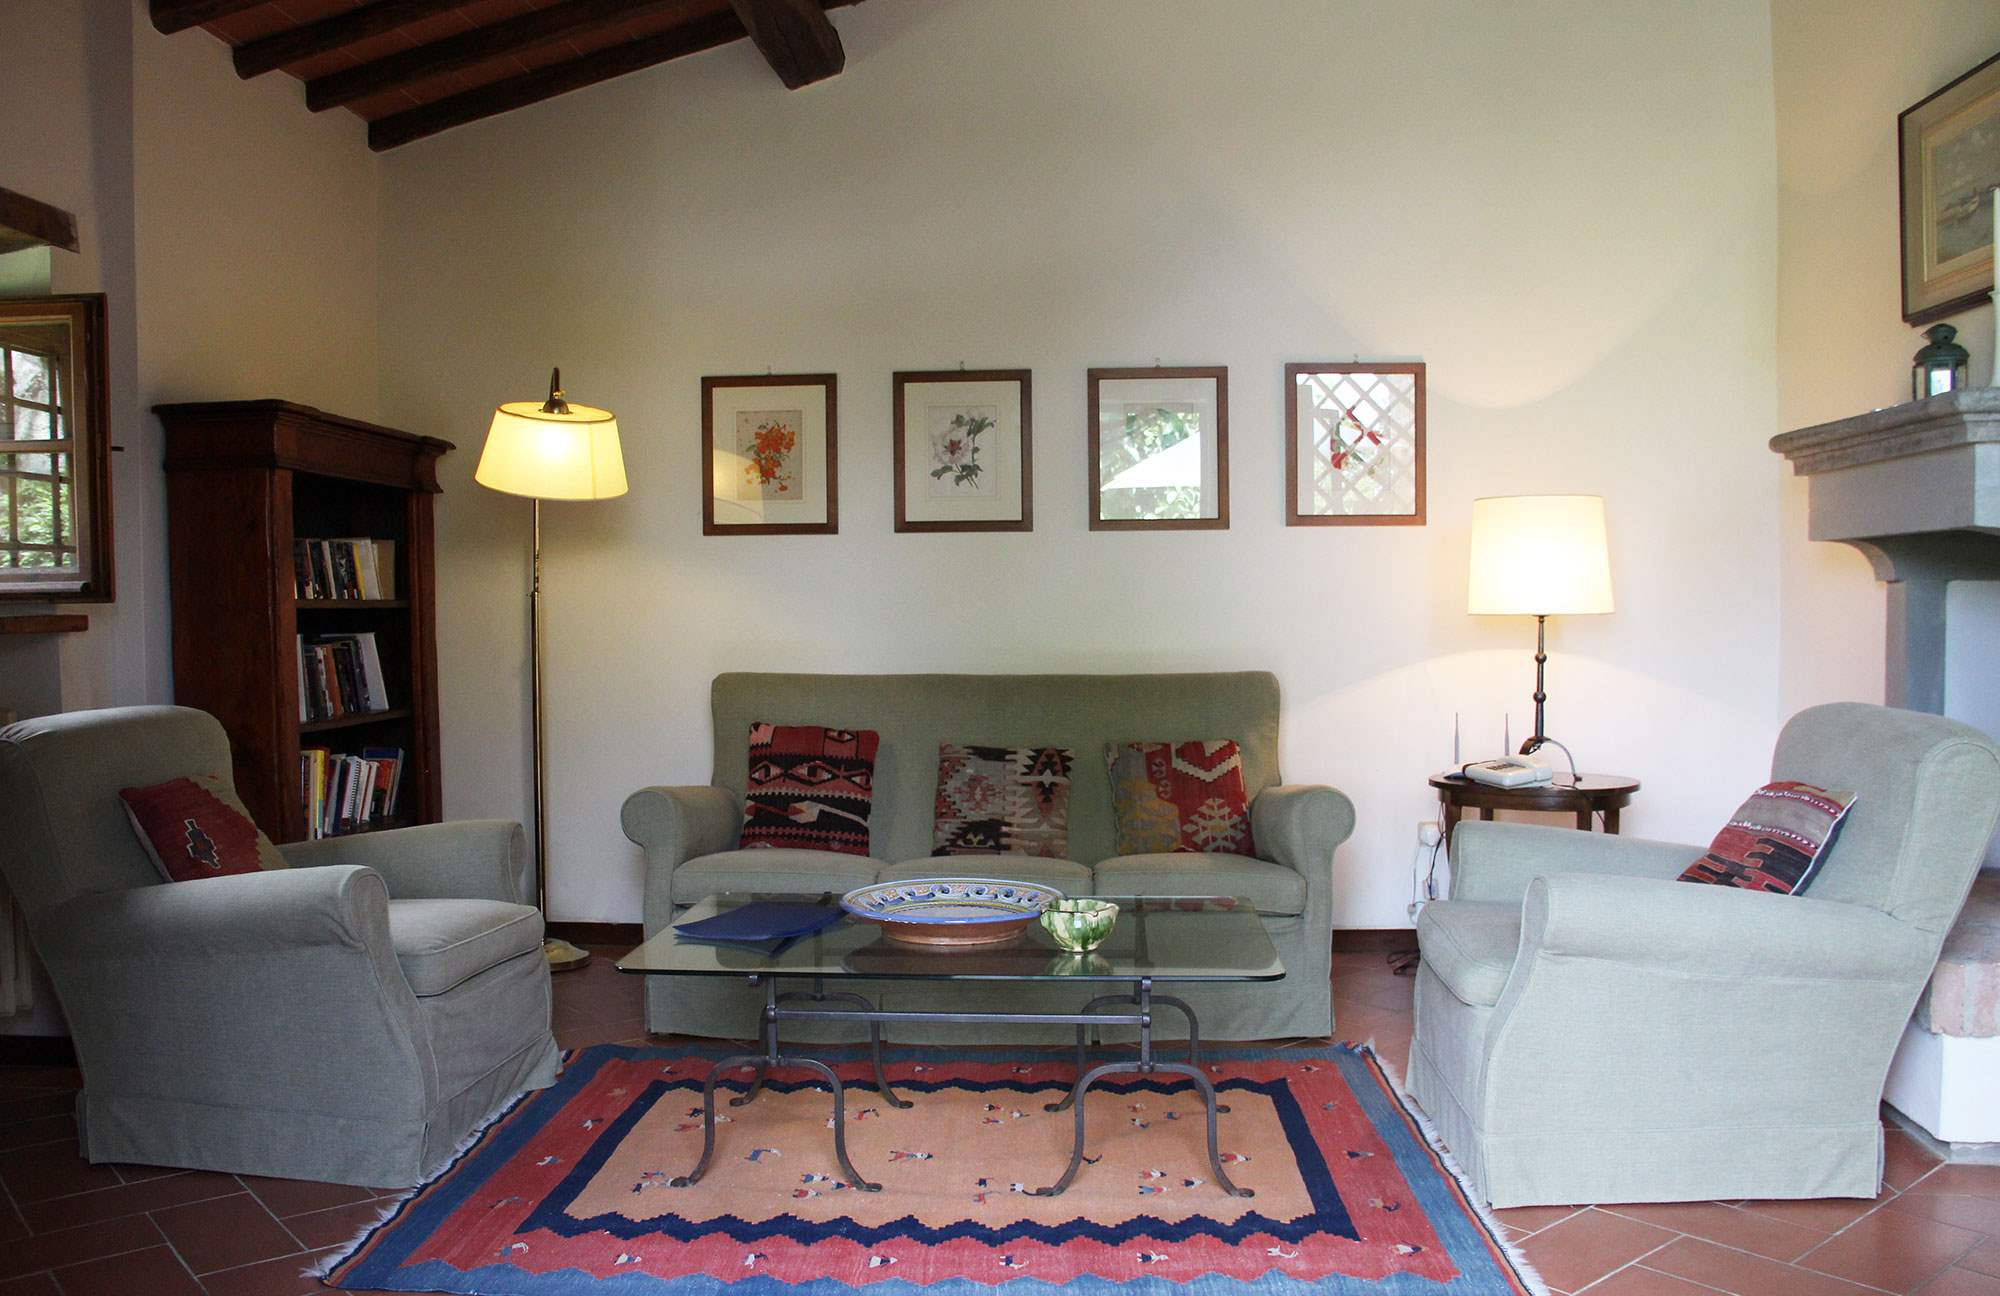 Casas Ferruzzi, 8 bedroom apartment in Chianti & Countryside, Tuscany Photo #4